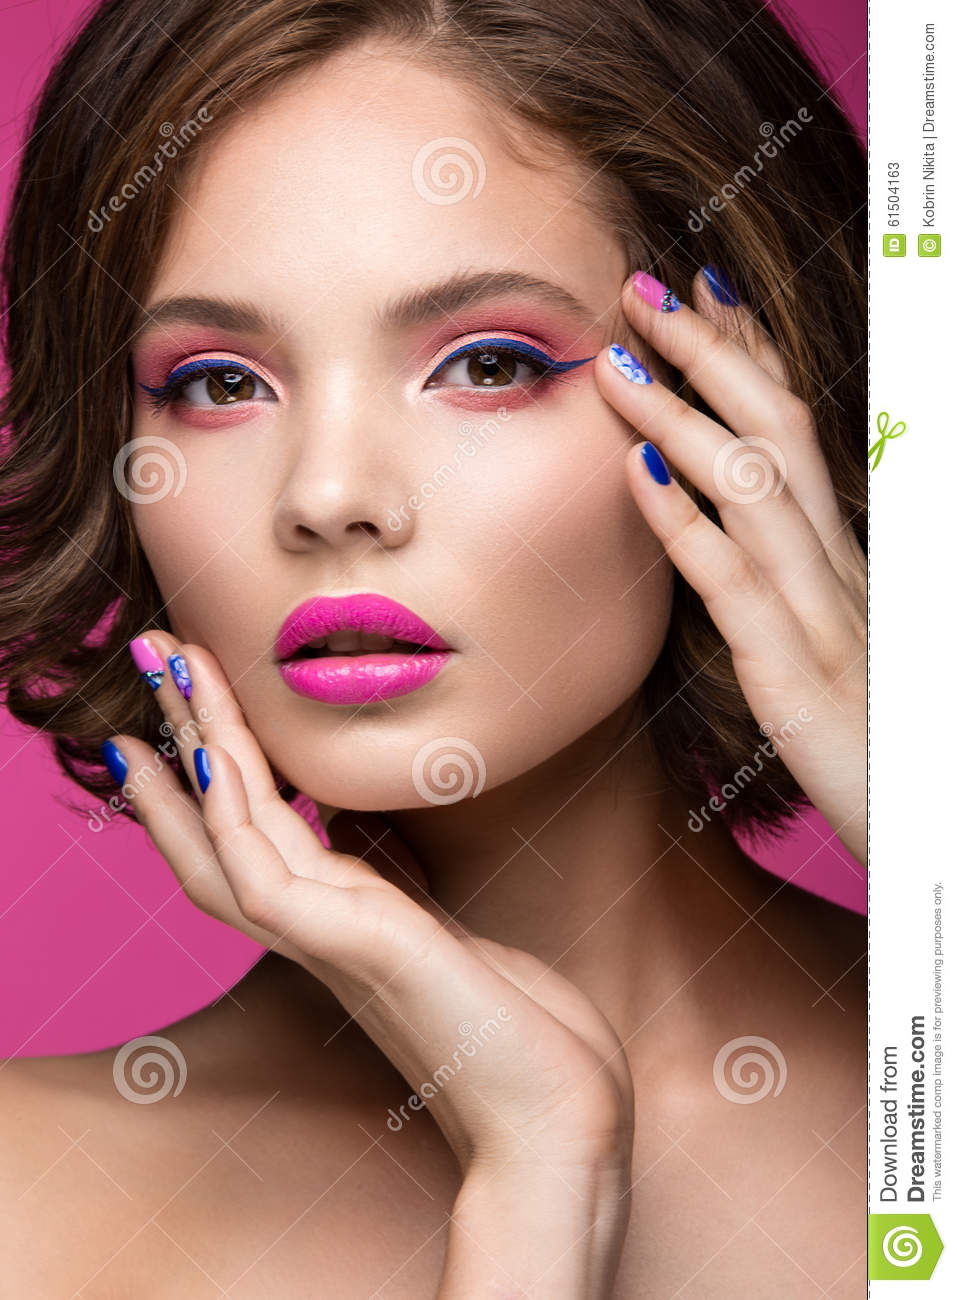 Beautiful Model Girl With Bright Pink Makeup And Royalty ...